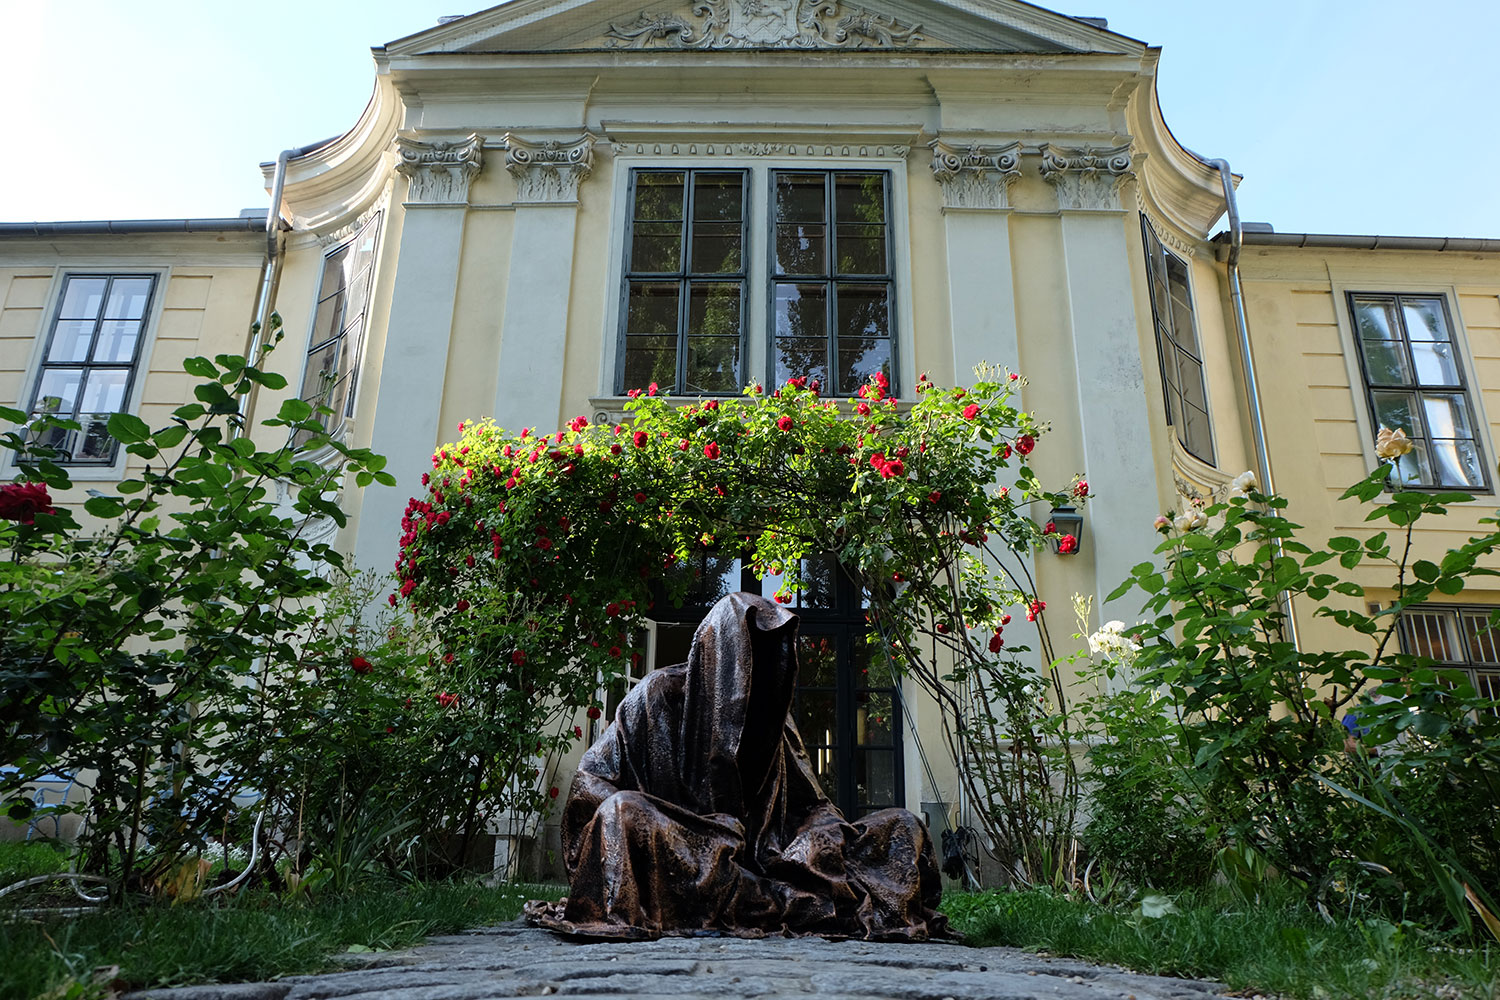 konstante-art-fair-vienna-gartenpaalais-schoenborn-volkskundemuseum-guardians-of-time-manfred-kili-kielnhofer-contemporary-art-arts-design-sculpture-statue-3231